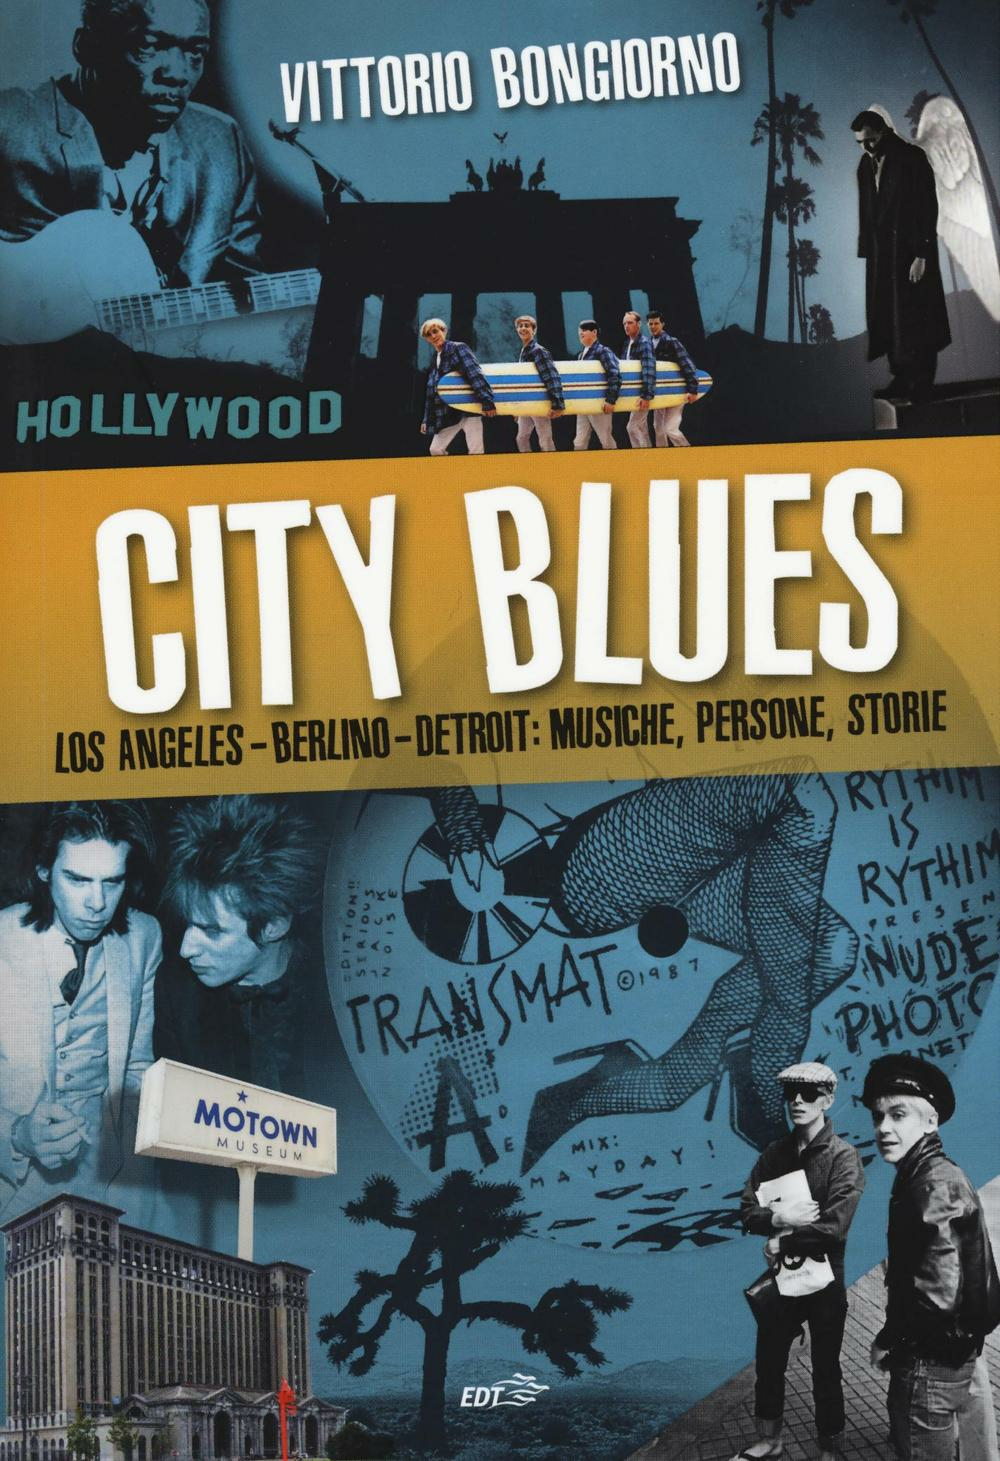 City blues. Los Angeles - B...